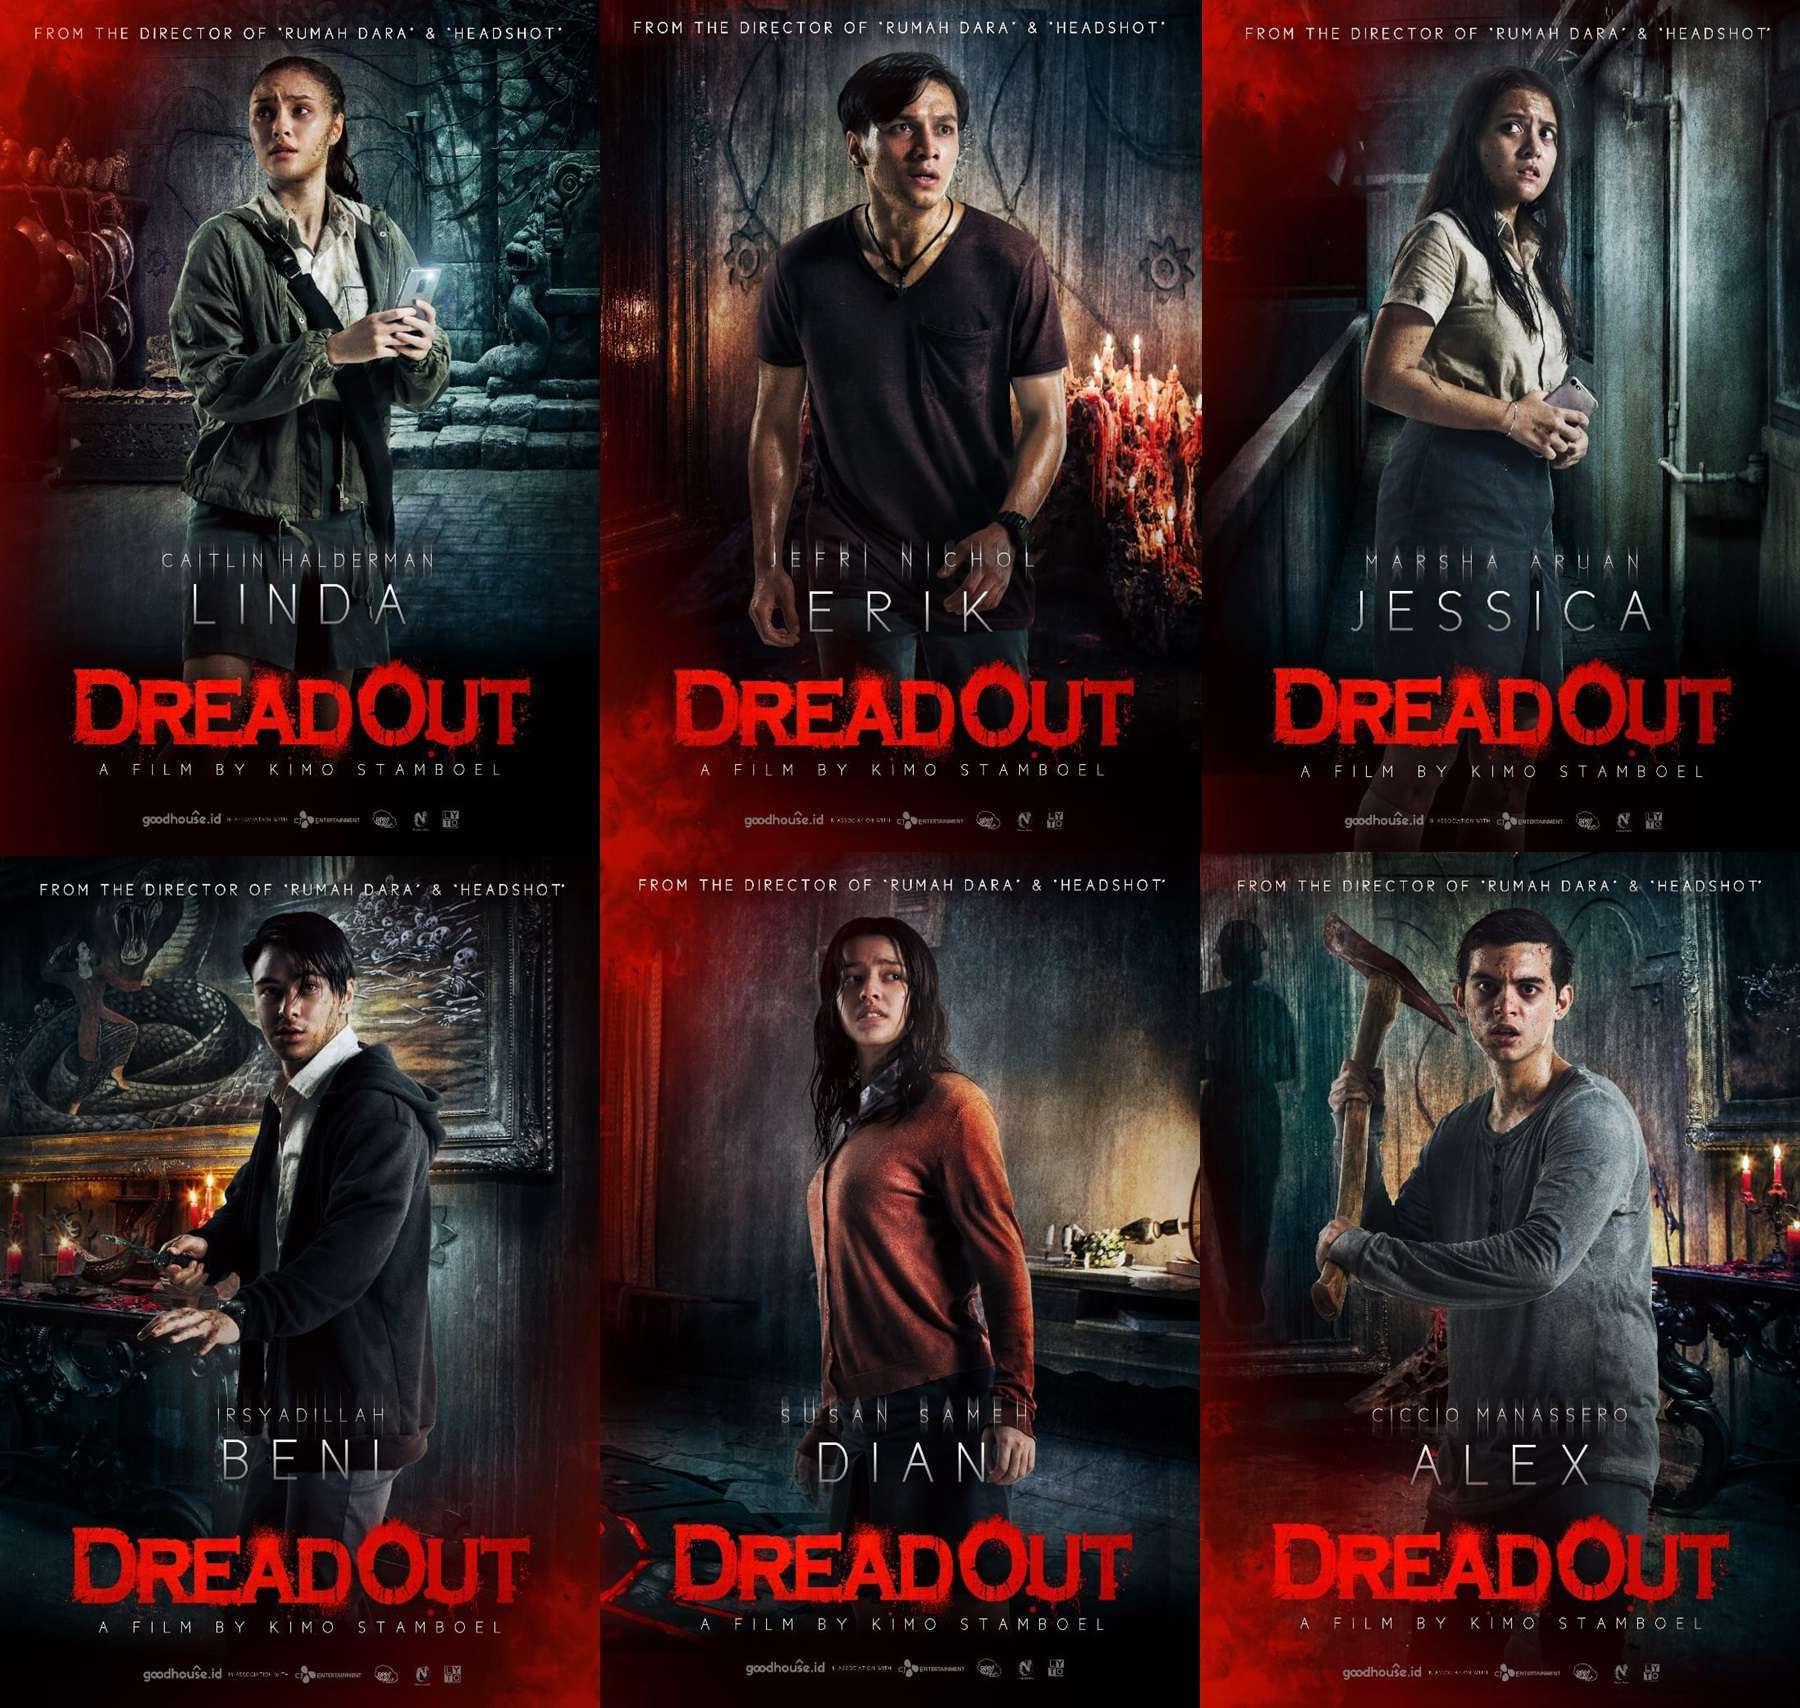 Film dread out